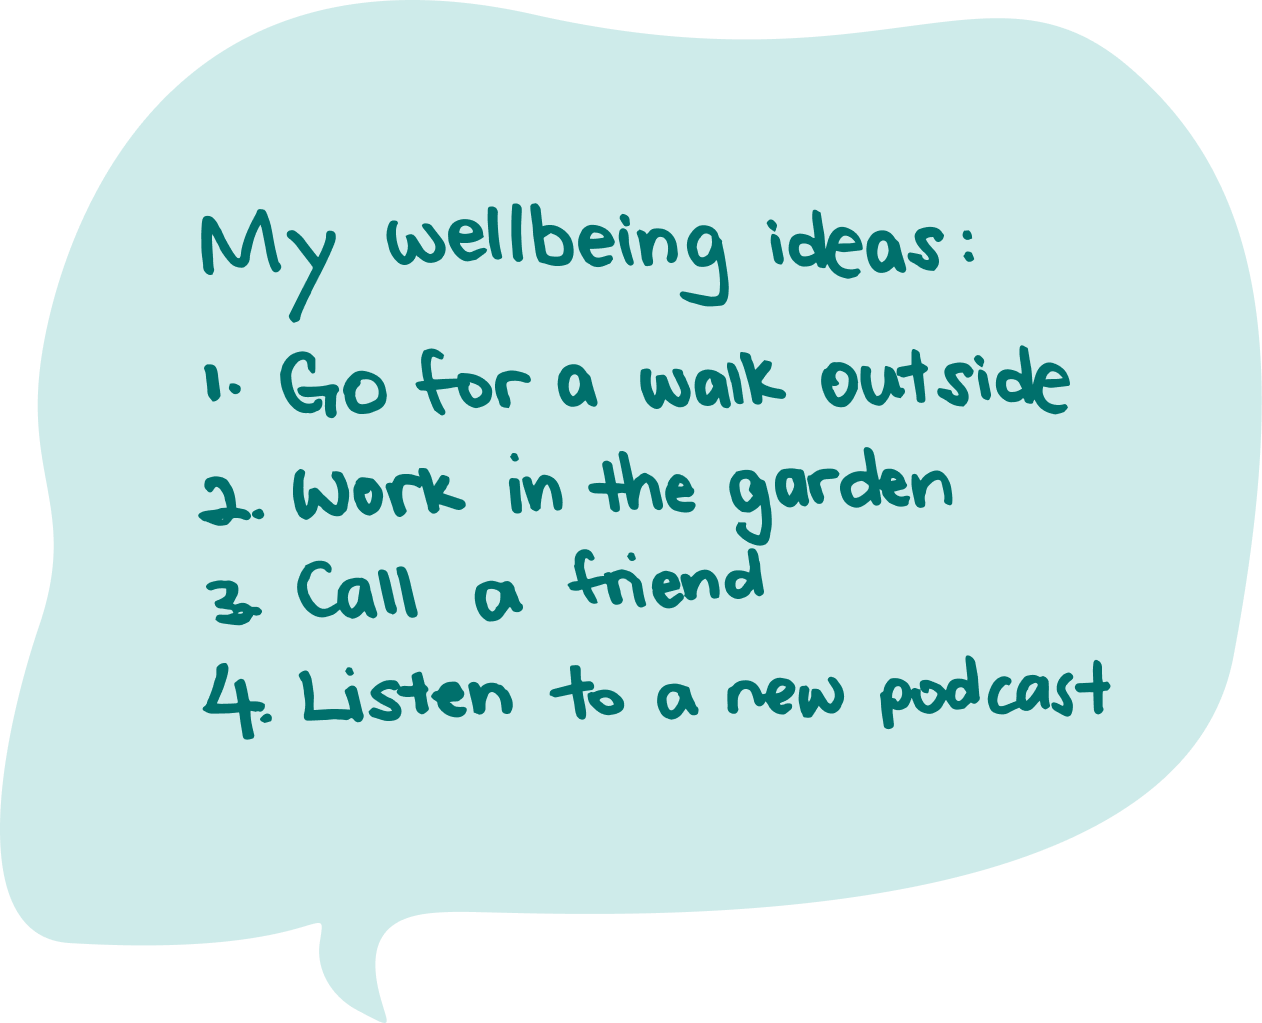 My Wellbeing Ideas: 1. Go for a walk outside, 2. Work in the garden, 3. Call a friend, 4. Listen to a new podcast